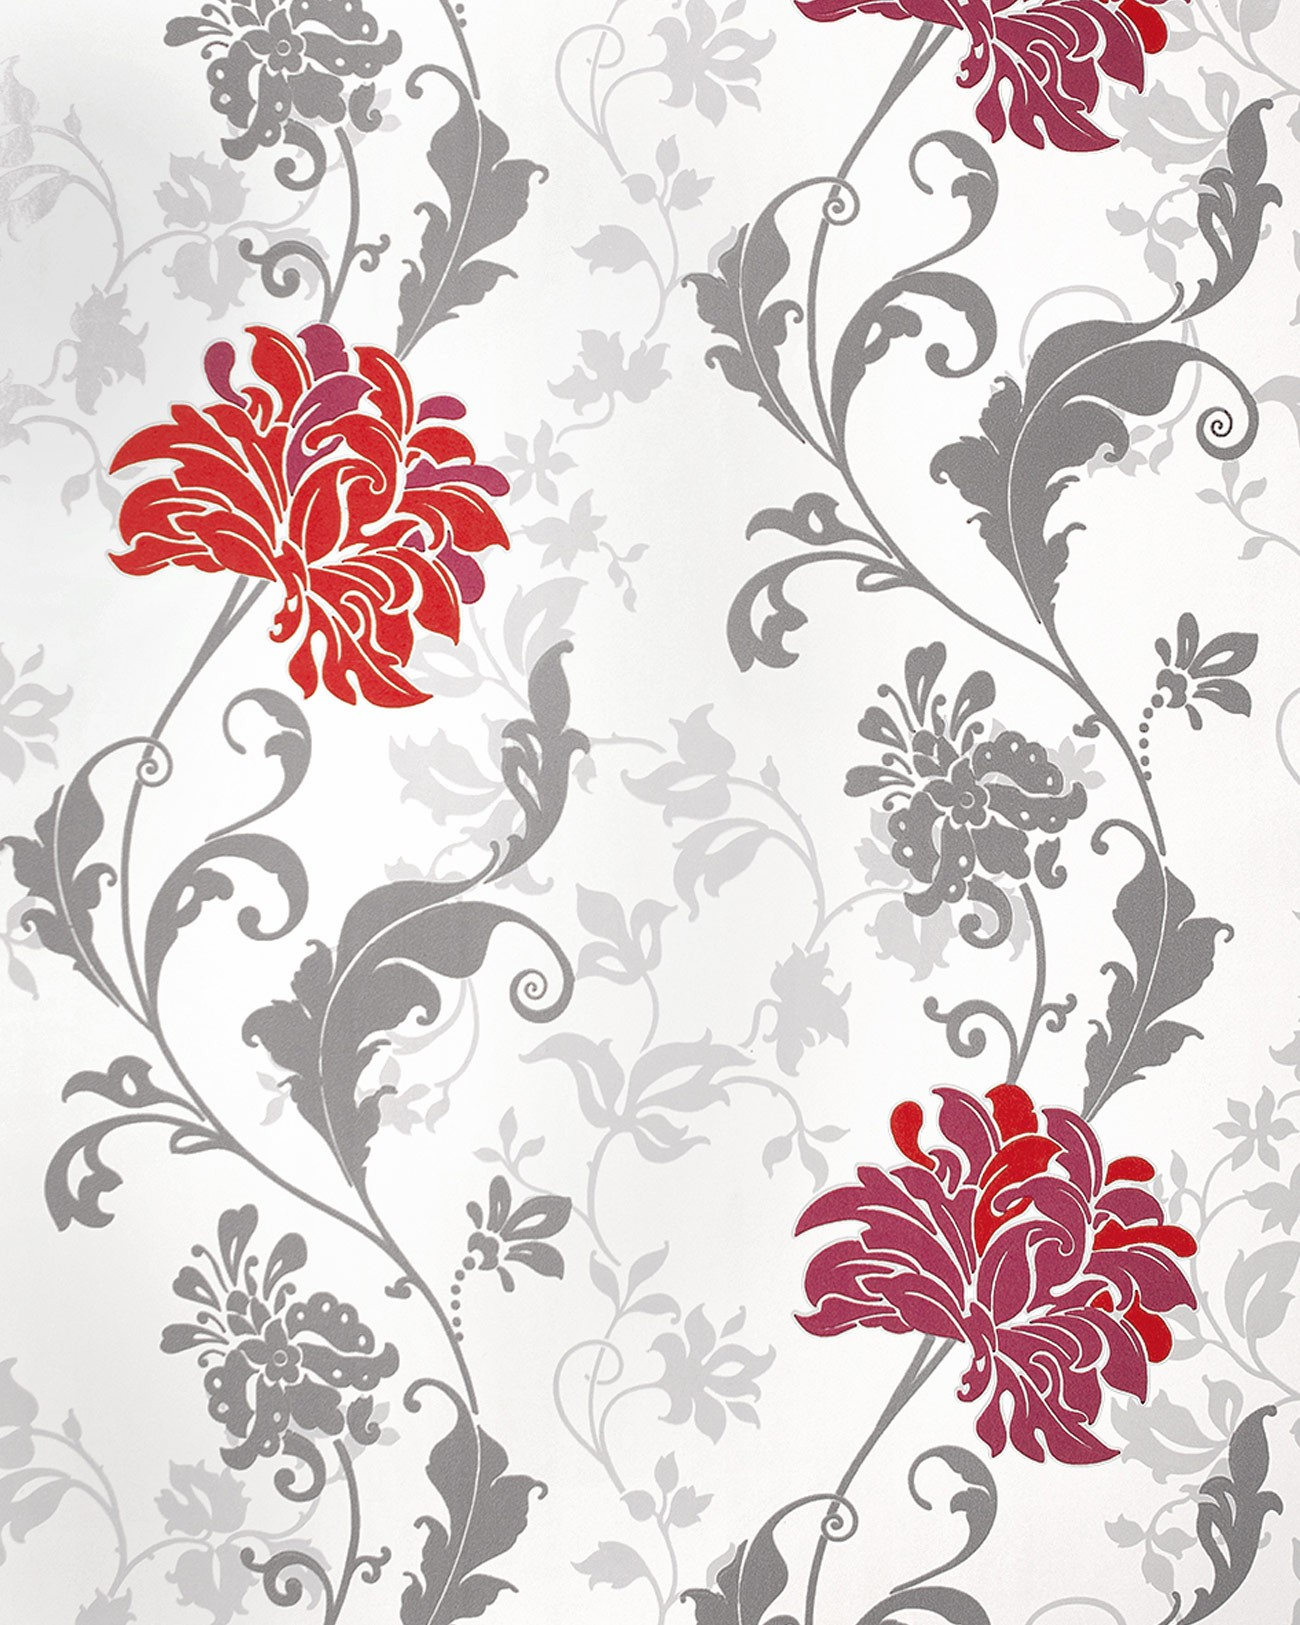 papier peint floral edem 833 25 dessin pr cieux fleurs et feuilles rouge bordeaux gris blanc 70 cm. Black Bedroom Furniture Sets. Home Design Ideas